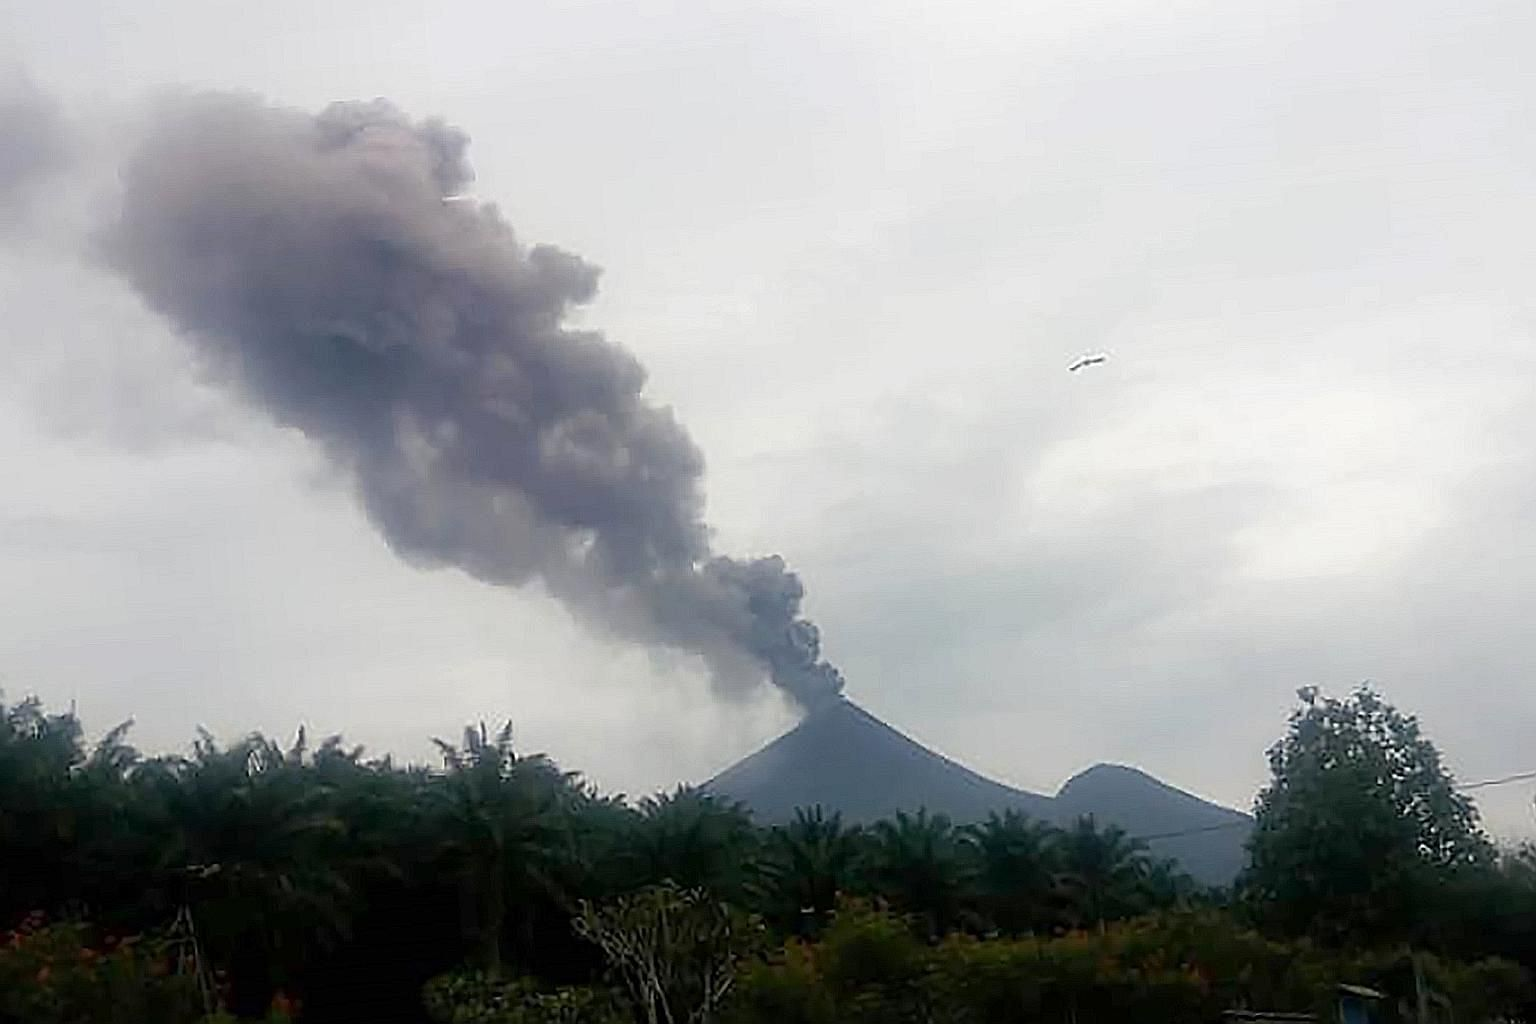 Papua New Guinea's Mount Ulawun volcano spewing ash into the air. Thousands fled when the volcano erupted on Wednesday. PHOTO: AGENCE FRANCE-PRESSE